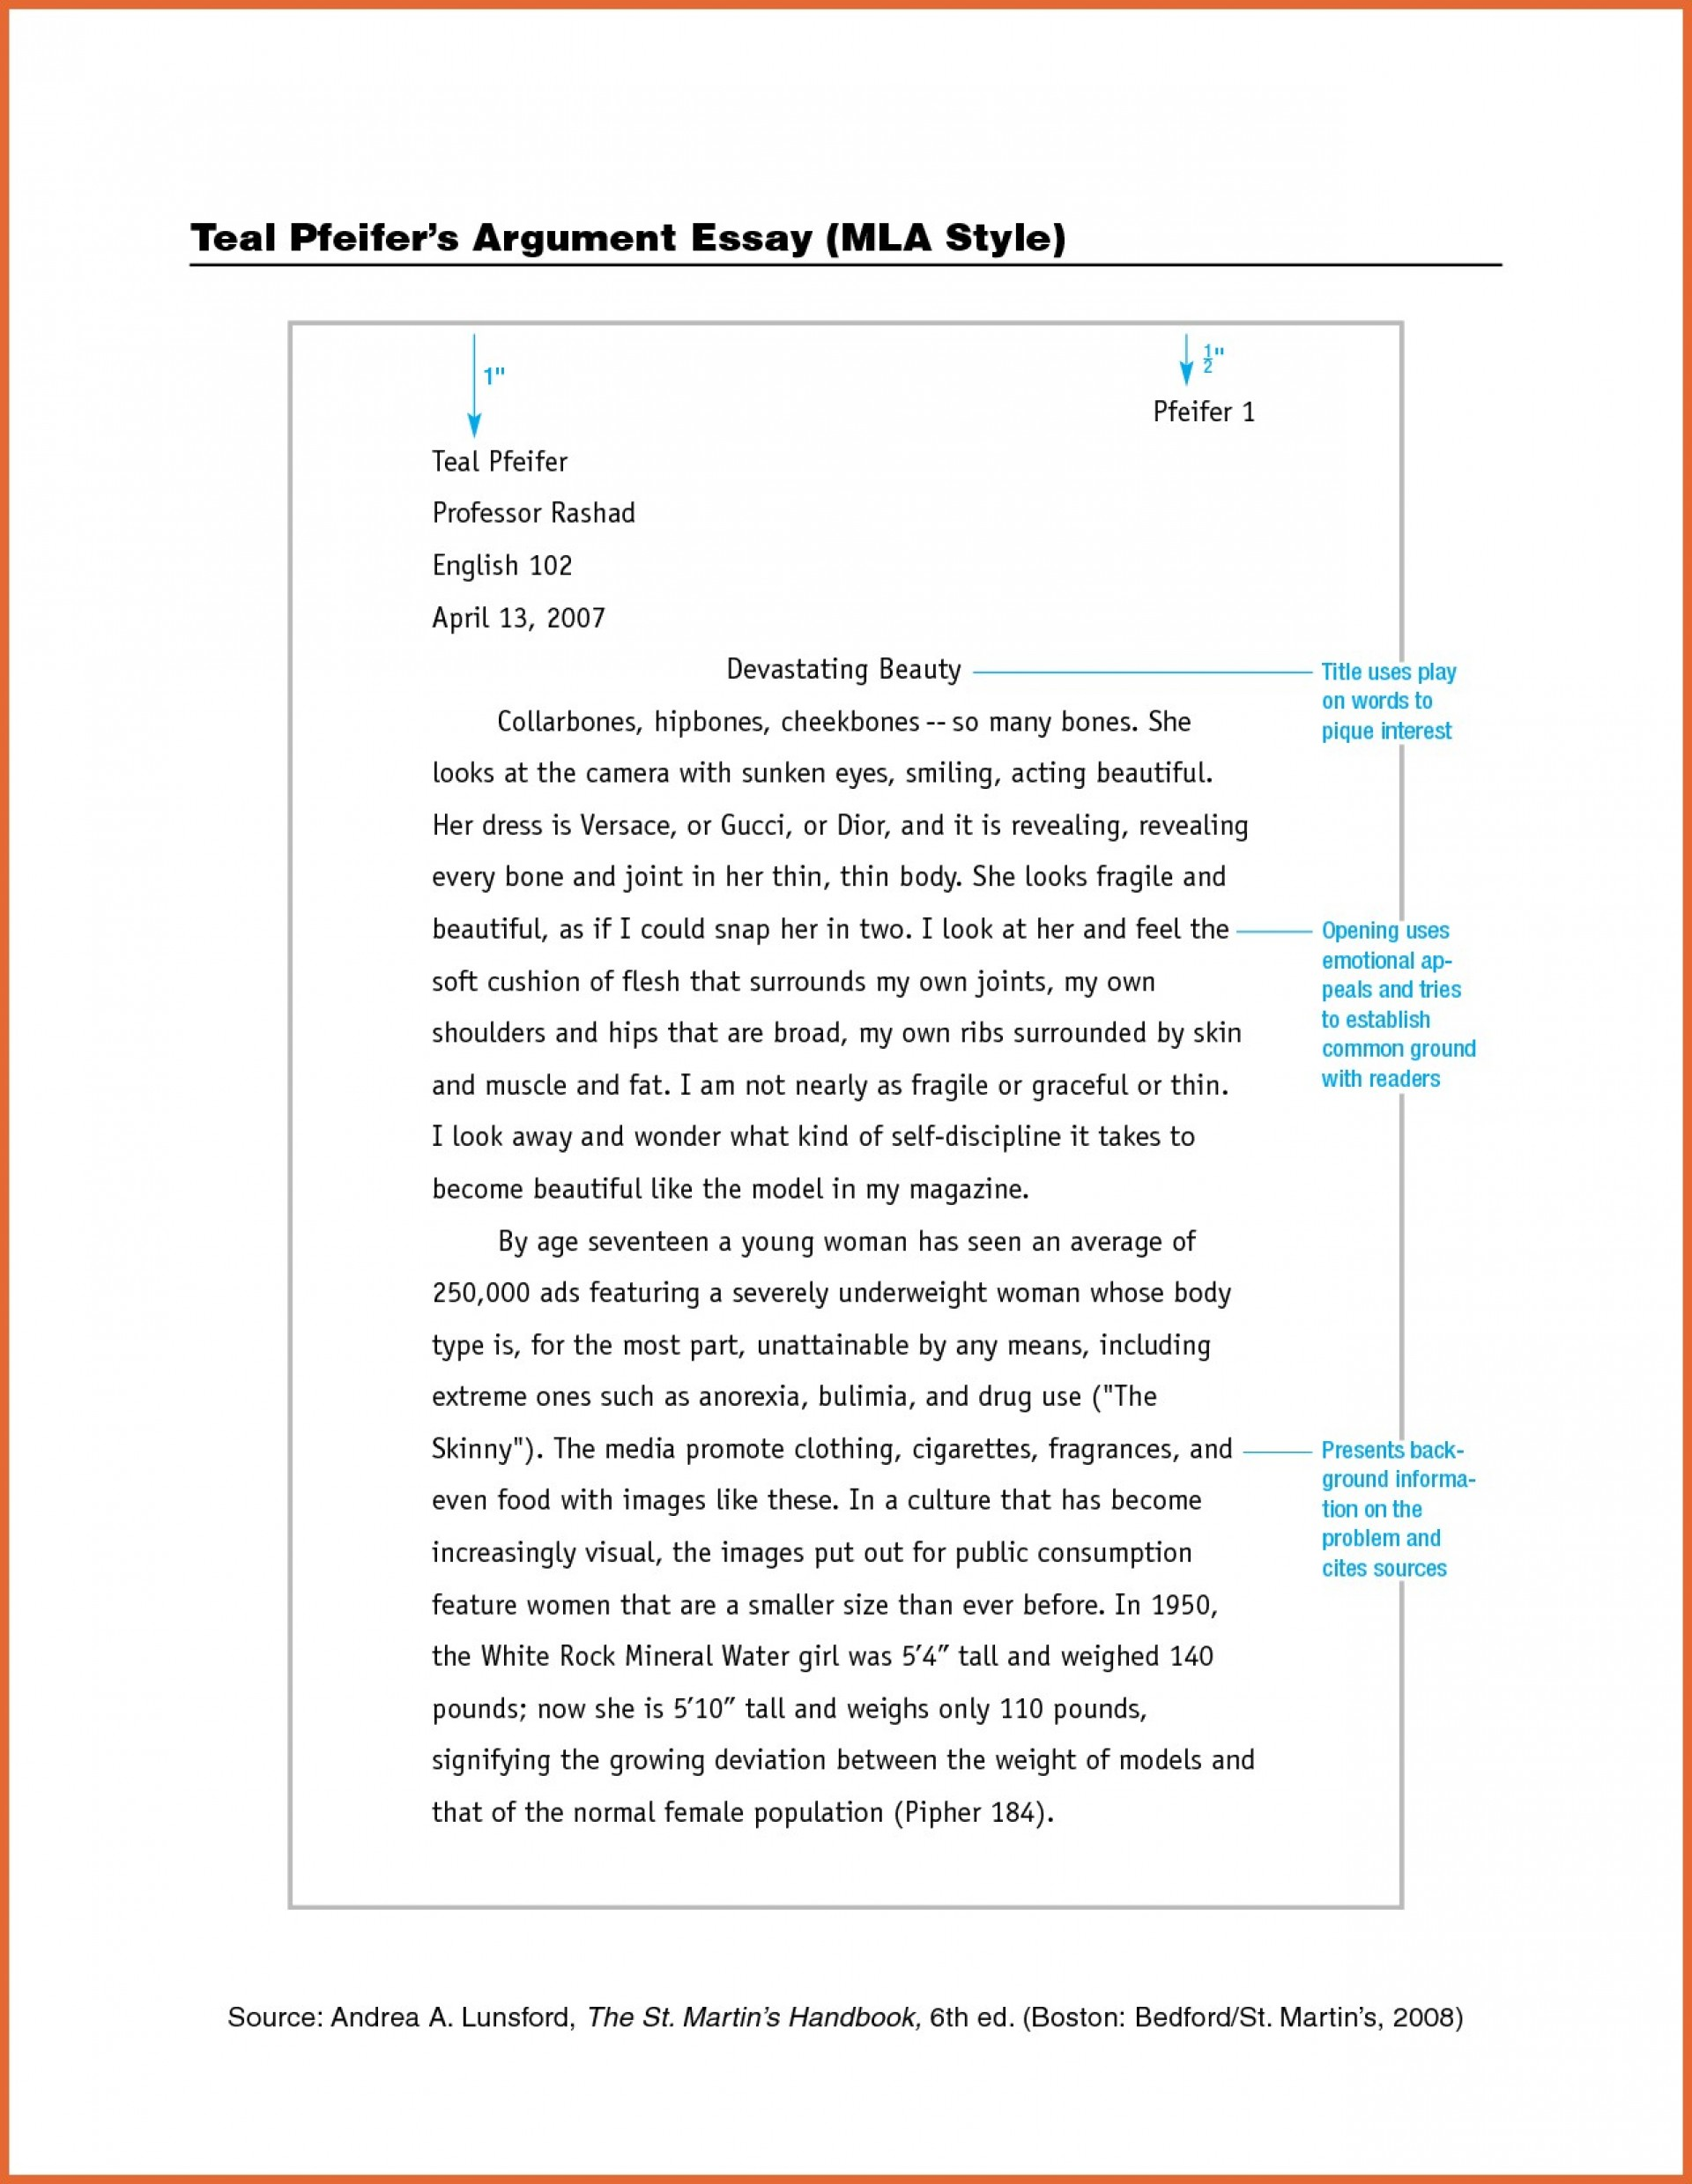 005 Essay Example What Is Mla Format For Essays Title Page Fresh Of An Goal How To Your Paper In Goodwi My Style With Word Narrative Unique Proper 8 1920